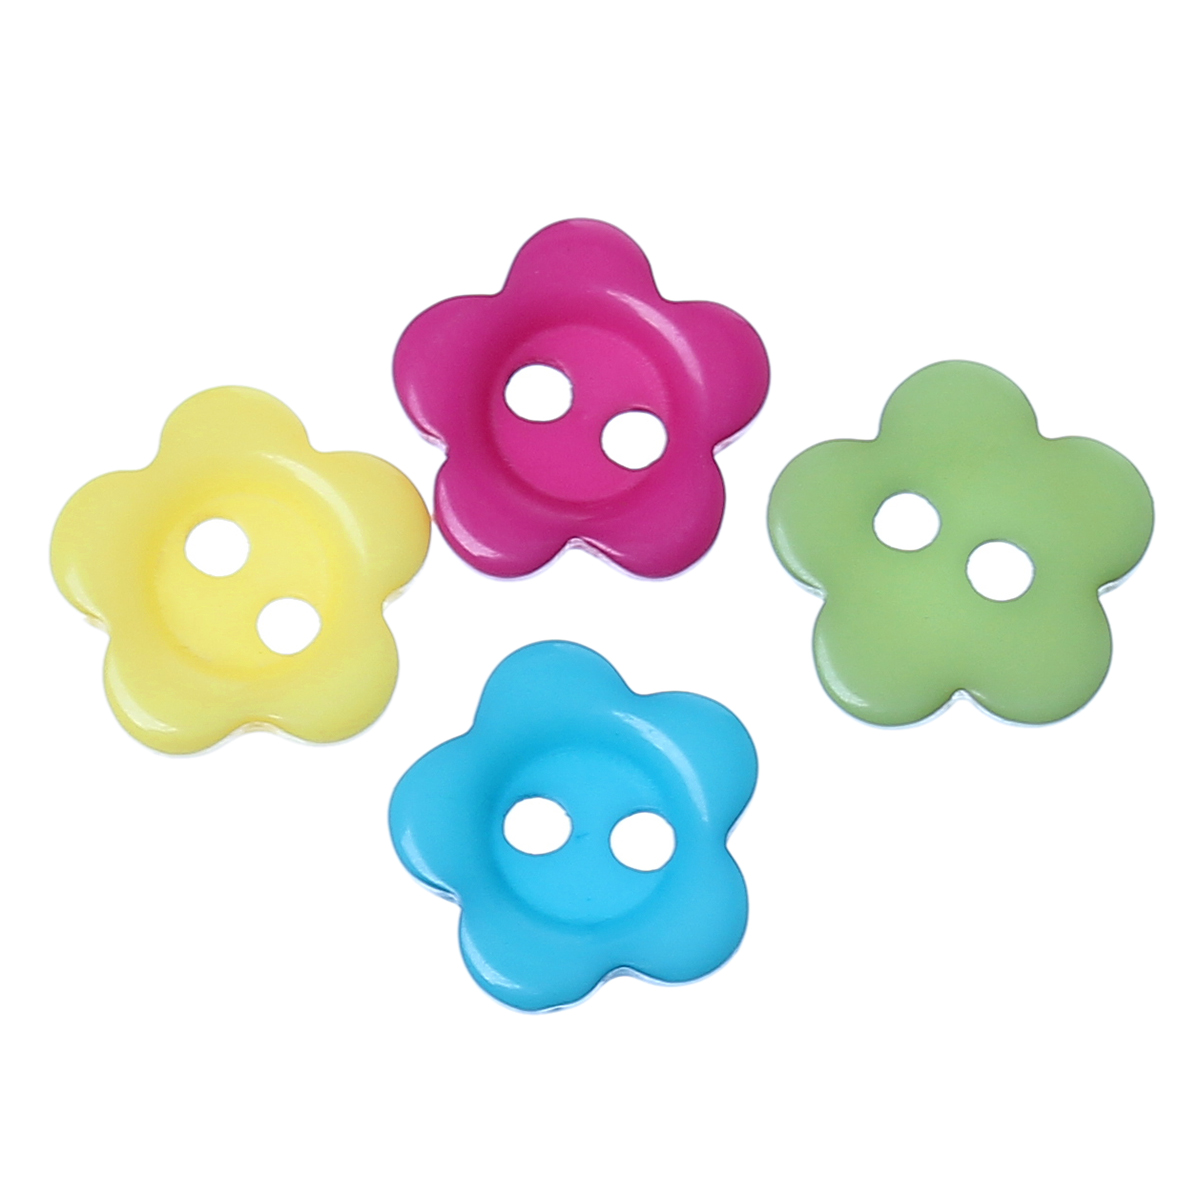 """DoreenBeads Resin Sewing Button Scrapbooking DIY Decoration Flower Mixed Two Holes 10 5mm 3 8 DoreenBeads Resin Sewing Button Scrapbooking DIY Decoration Flower Mixed Two Holes 10.5mm( 3/8"""") x 10mm( 3/8""""), 30 PCs 2018 new"""